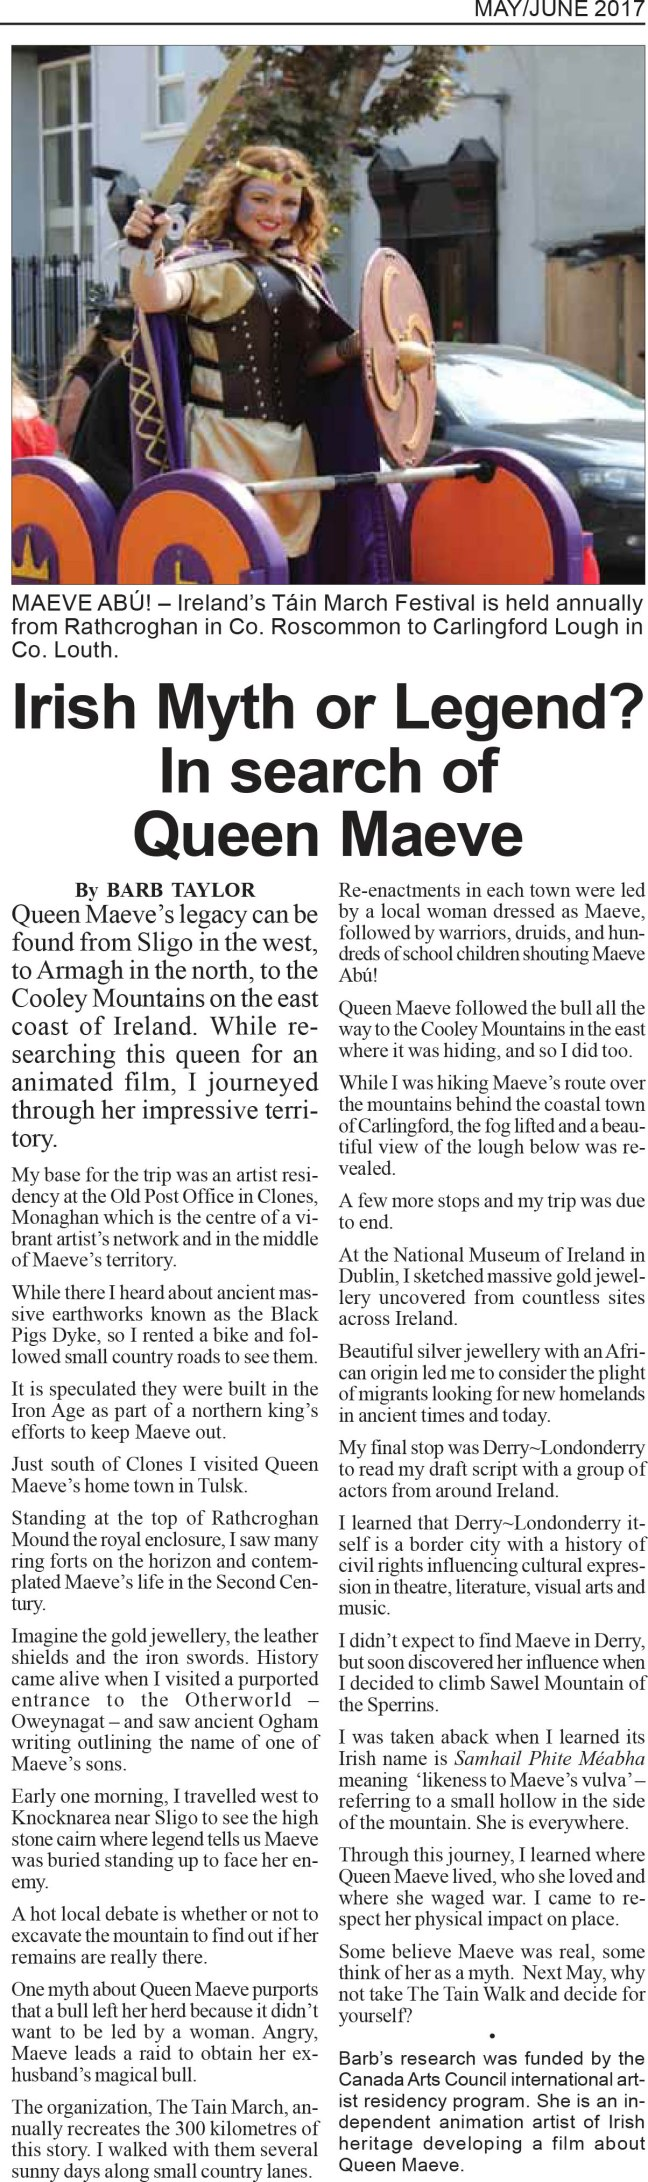 A story about the search for Queen Maeve's history